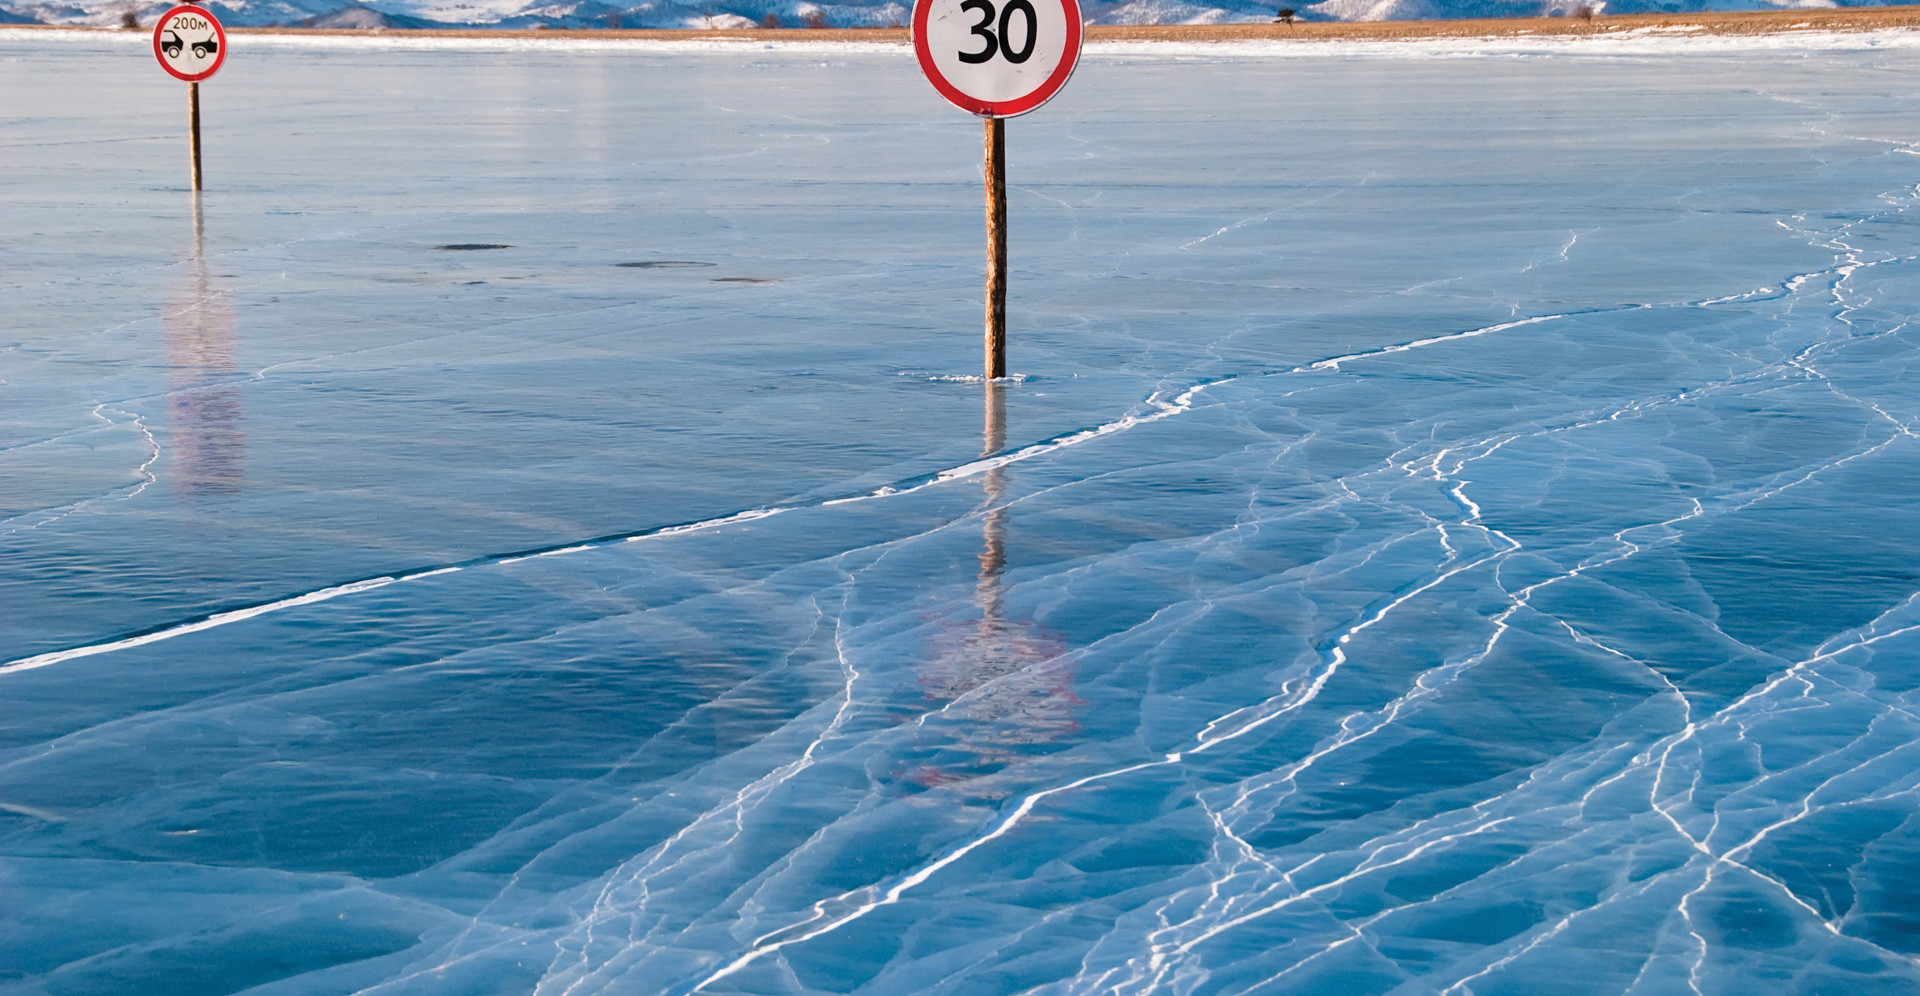 big frozen lake baikal with a road signs in the middle